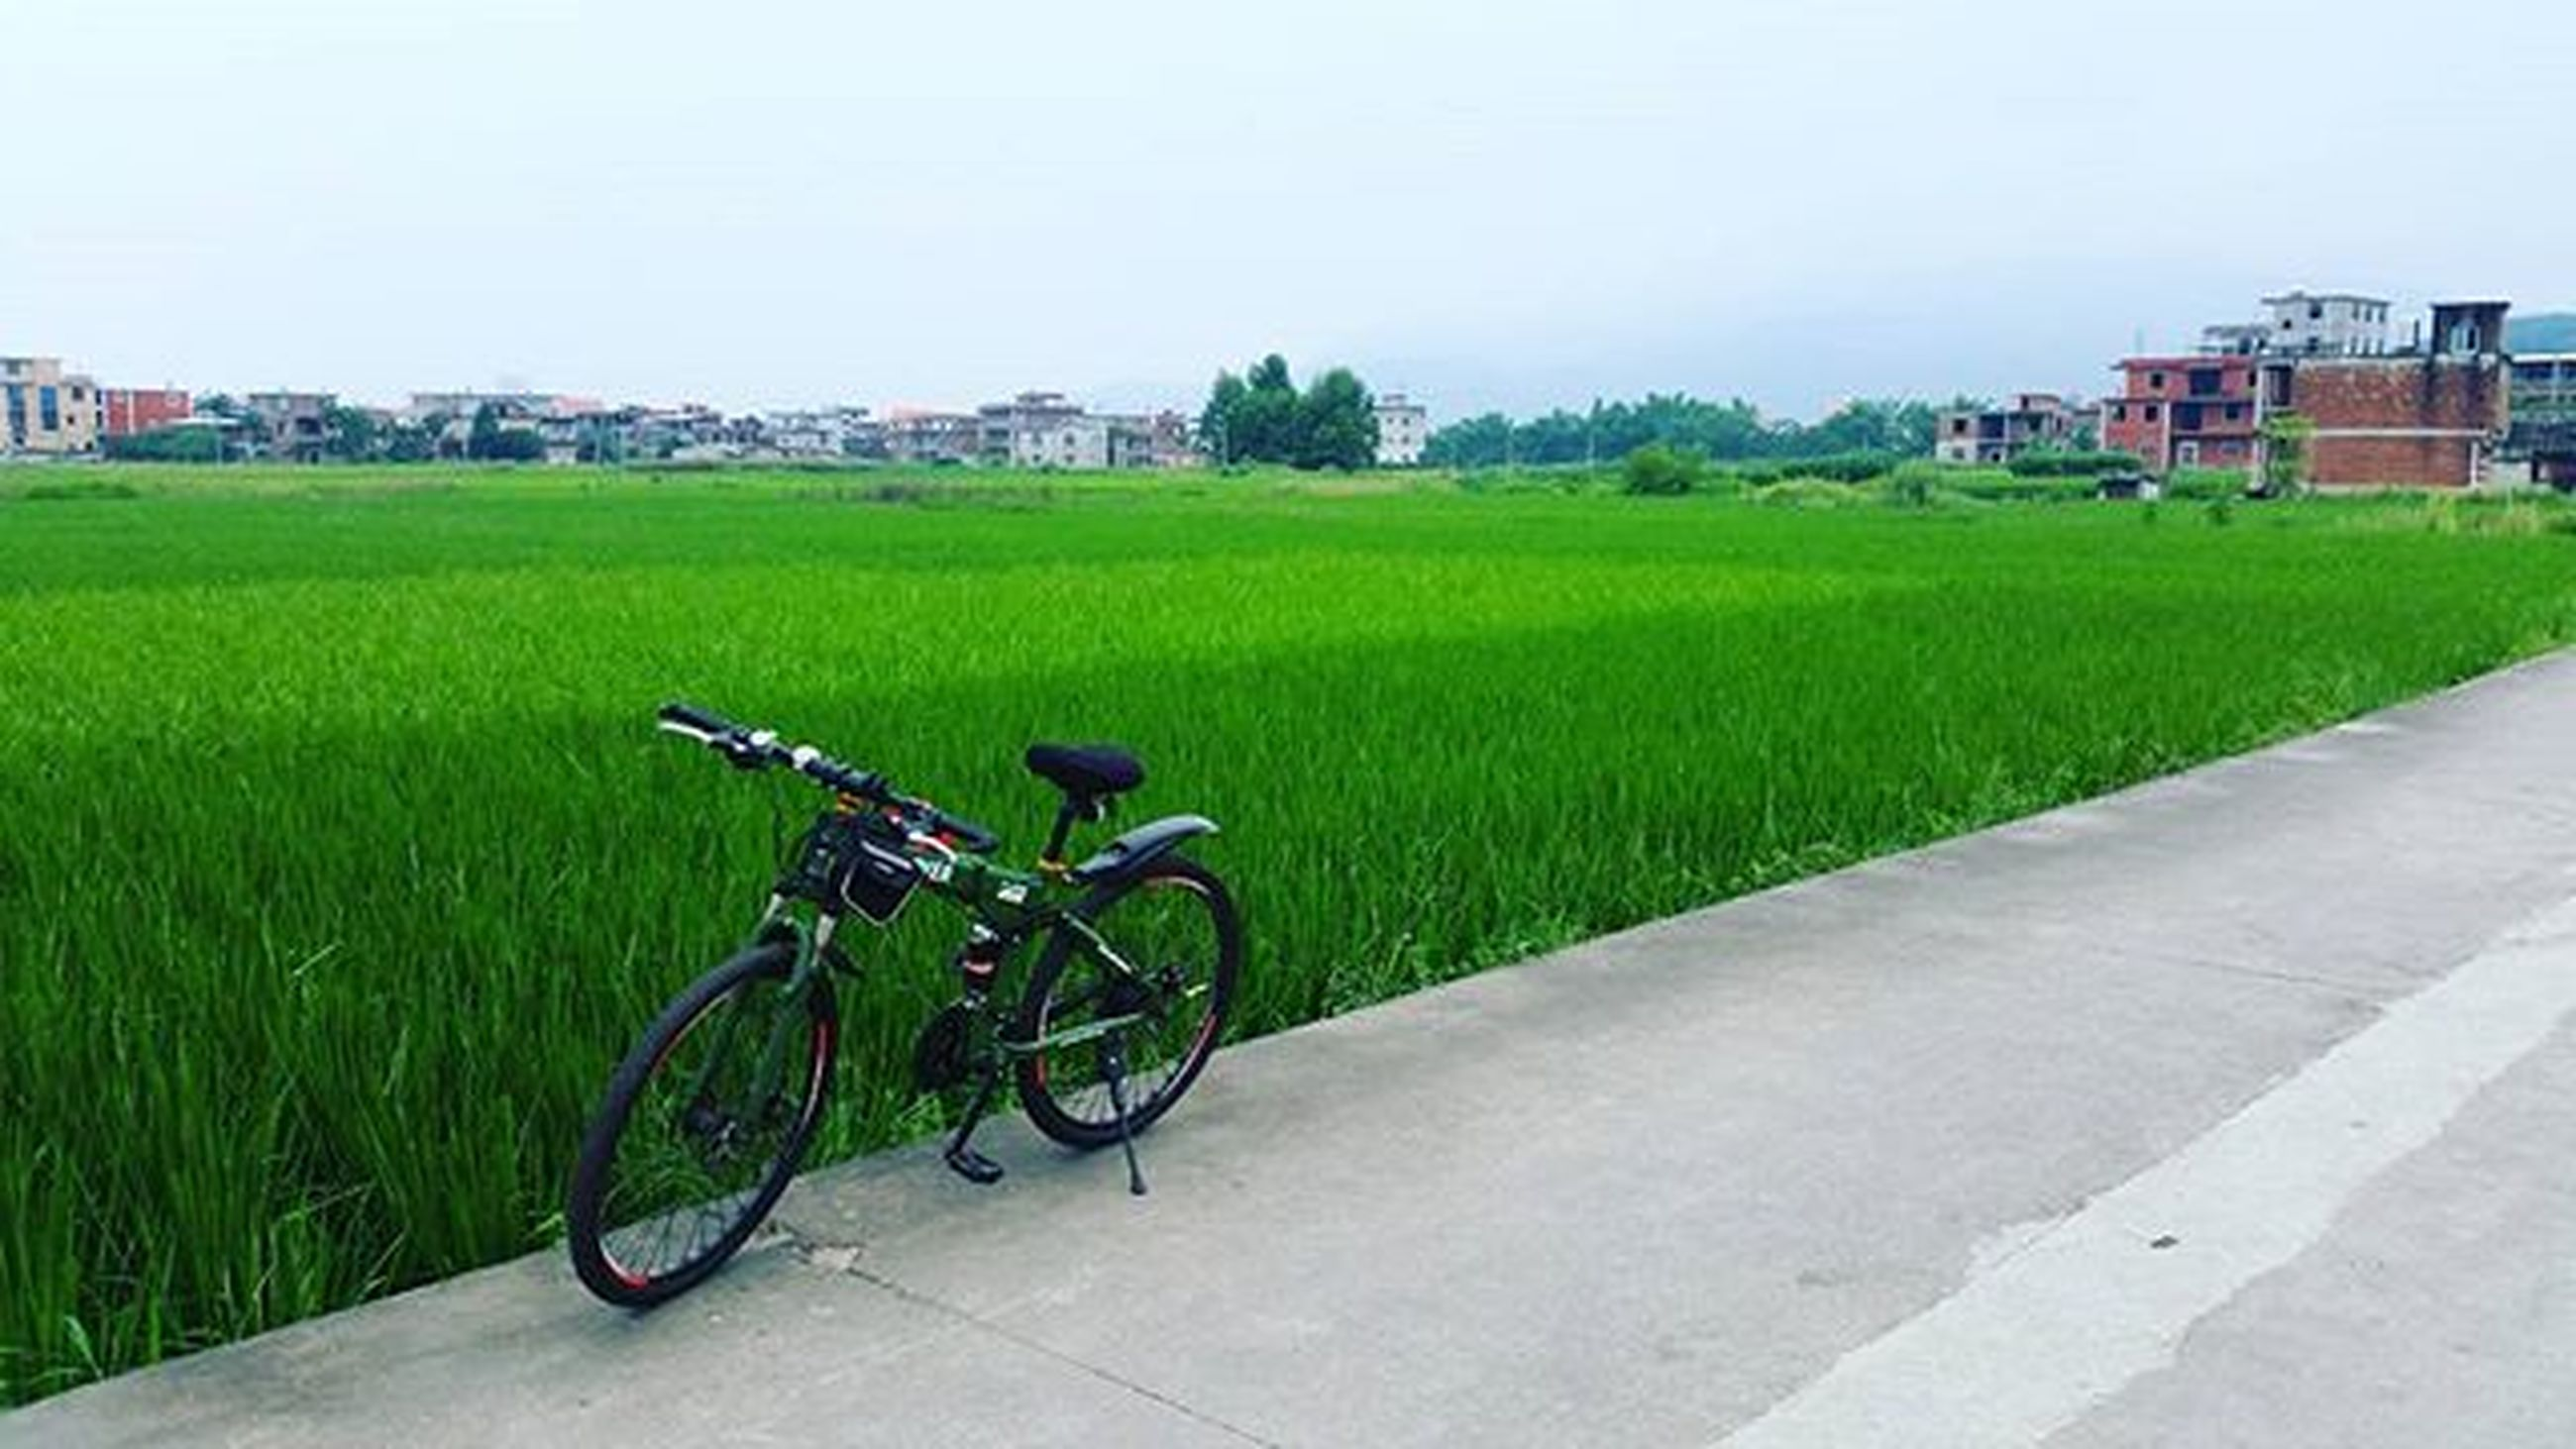 bicycle, transportation, land vehicle, mode of transport, grass, building exterior, parked, built structure, architecture, stationary, parking, green color, clear sky, road, copy space, field, street, day, city, outdoors